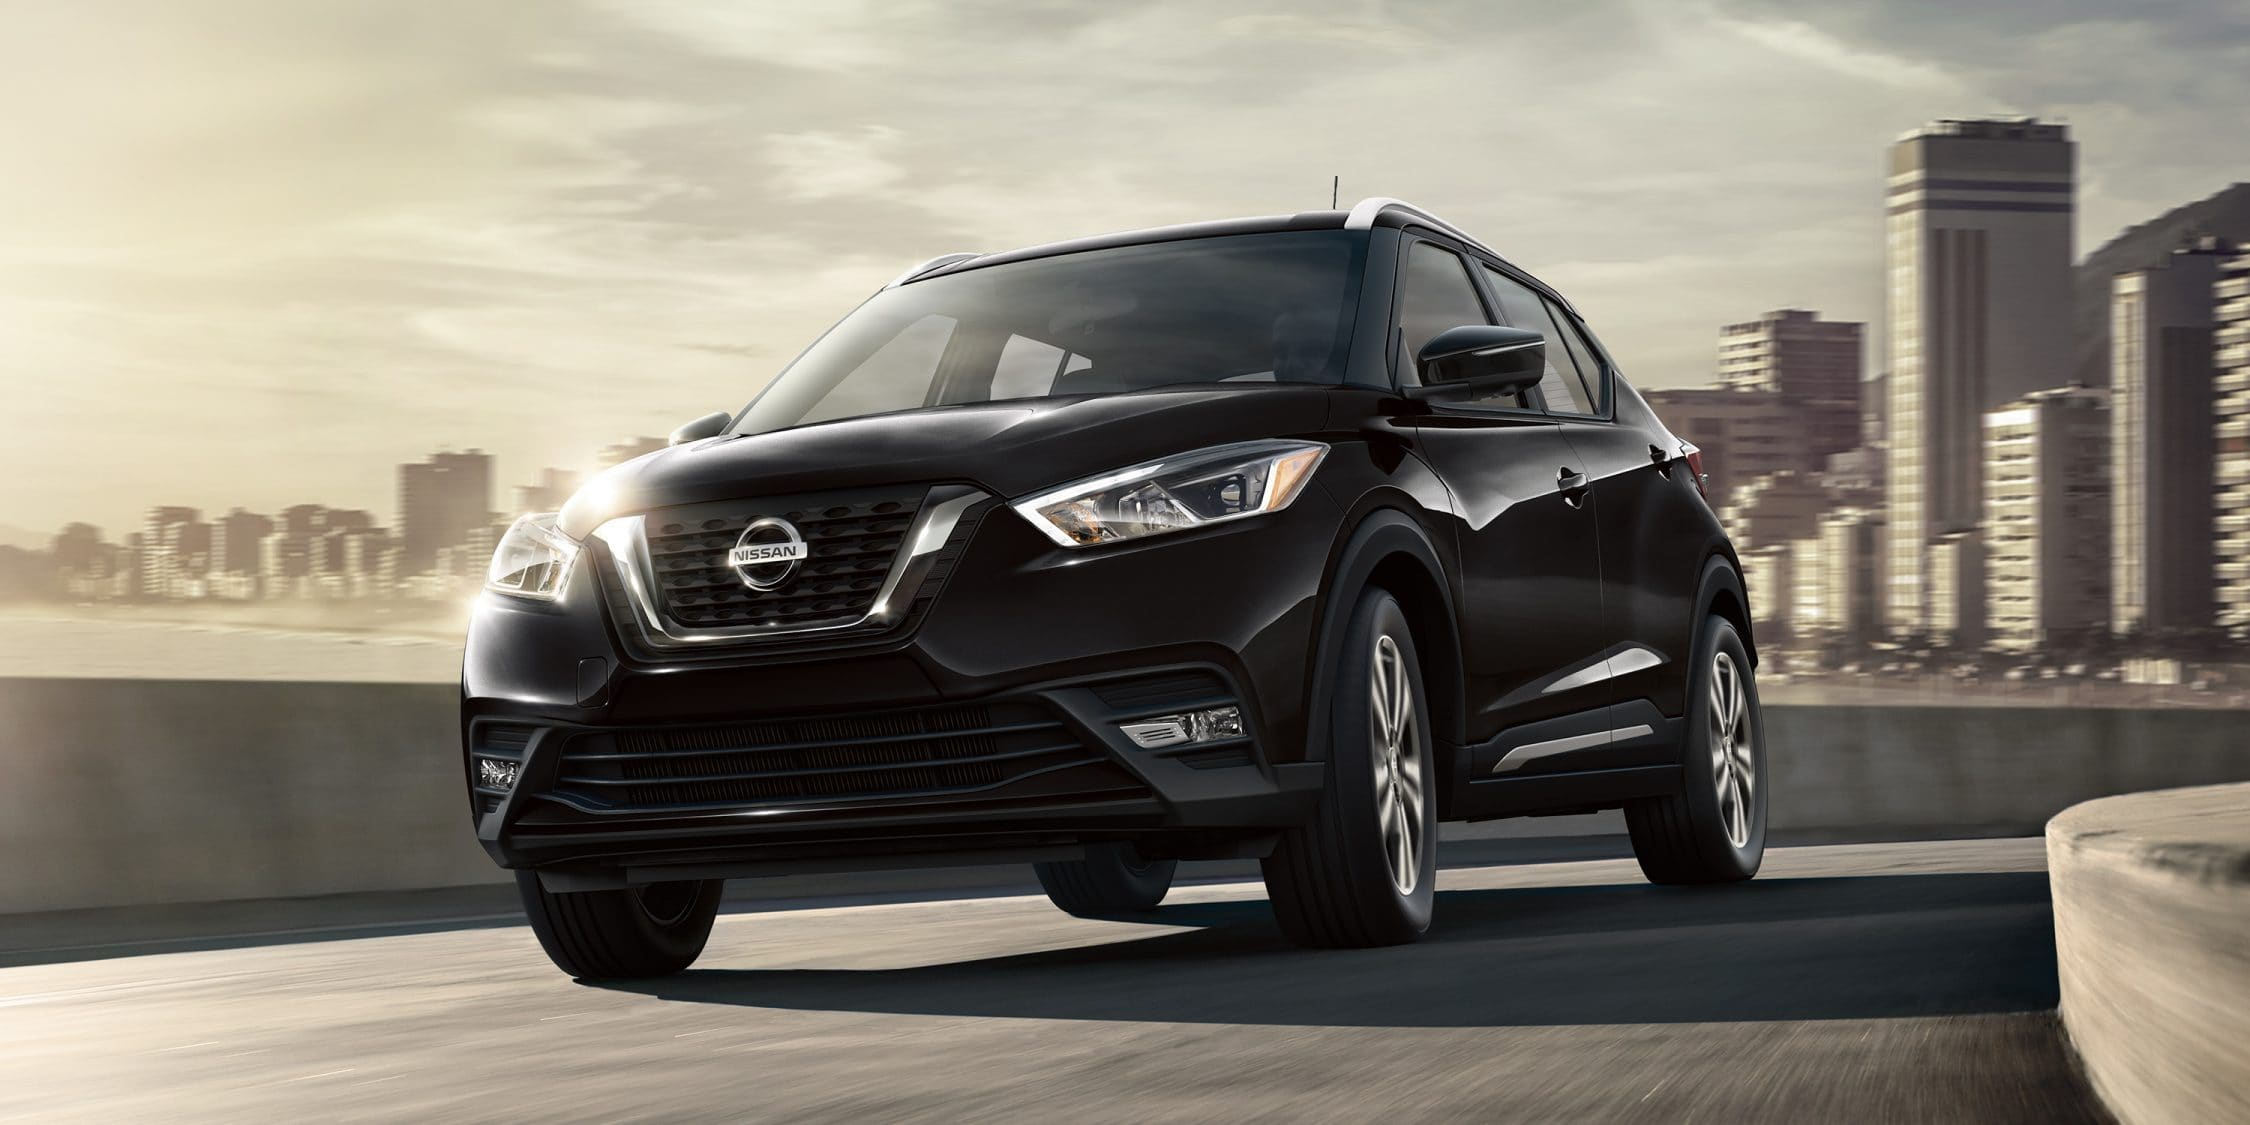 2019 Nissan Kicks Leasing near Manassas, VA